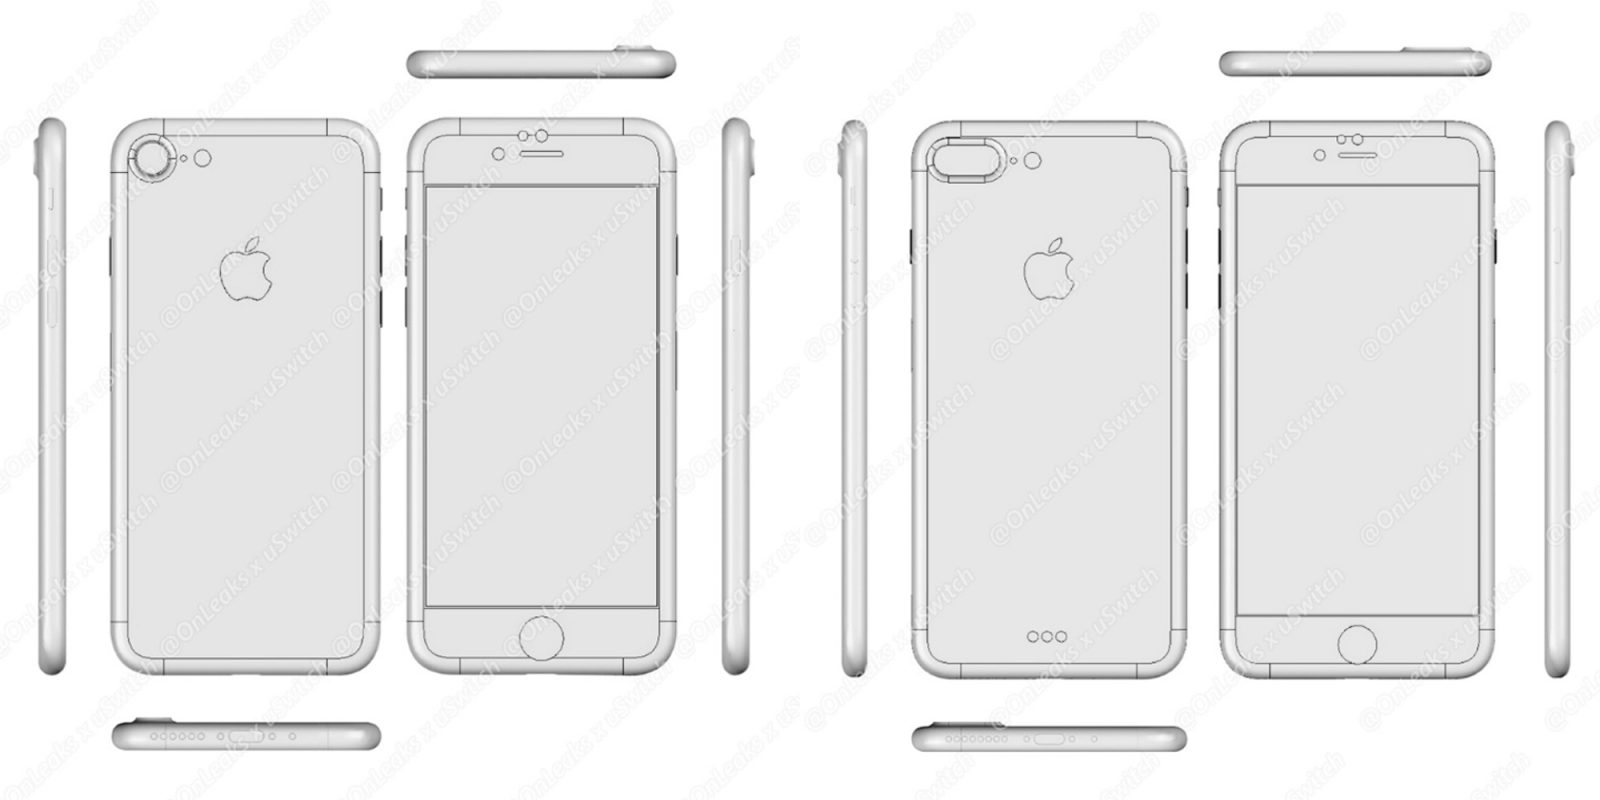 Iphone 7 Factory Cad Shows Camera P